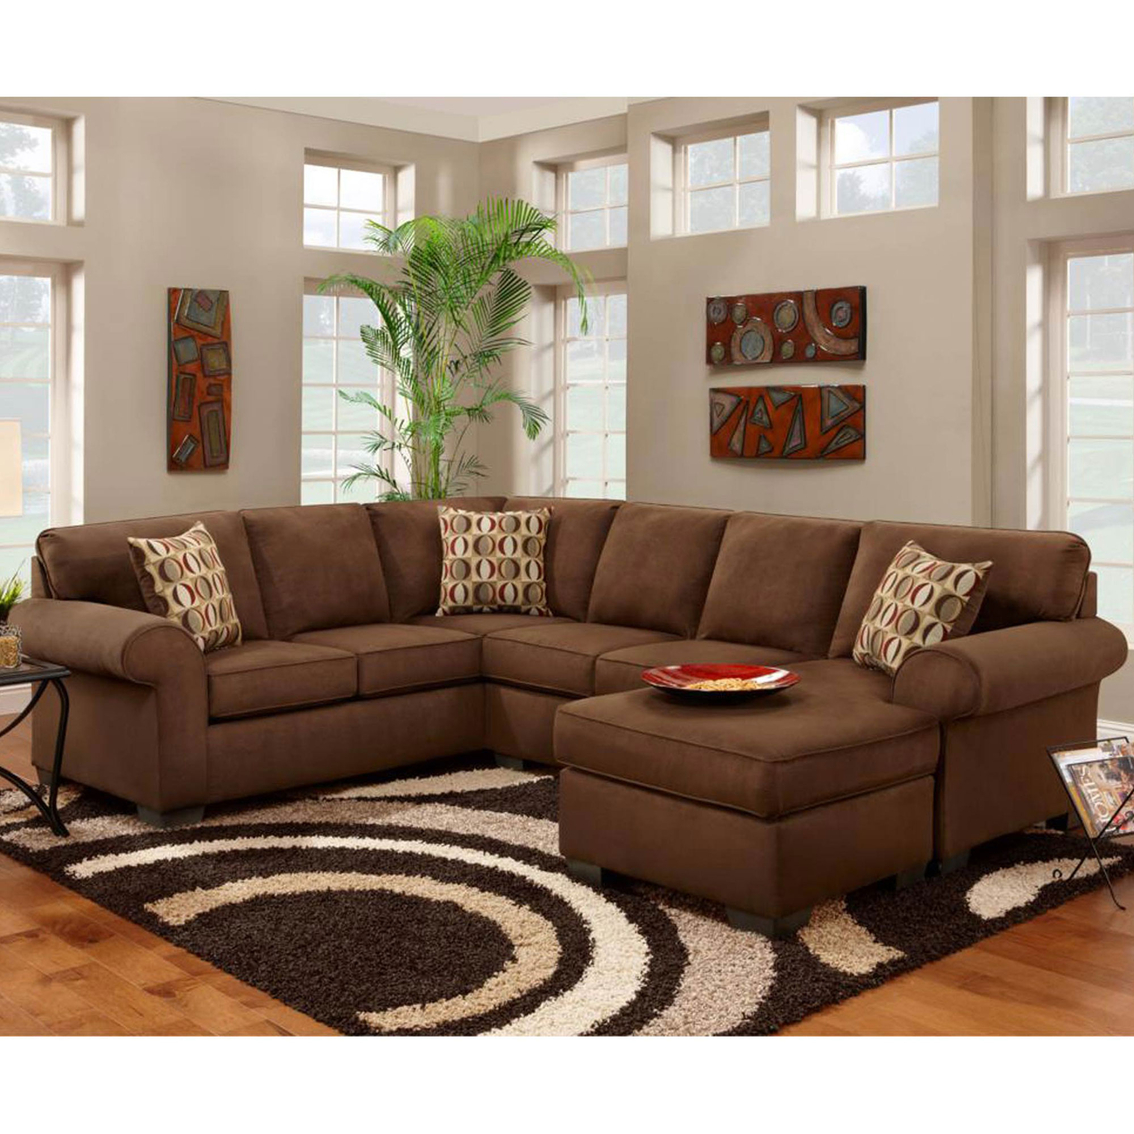 Chelsea Home Adams 3 Pc Sectional Sofas Couches Home